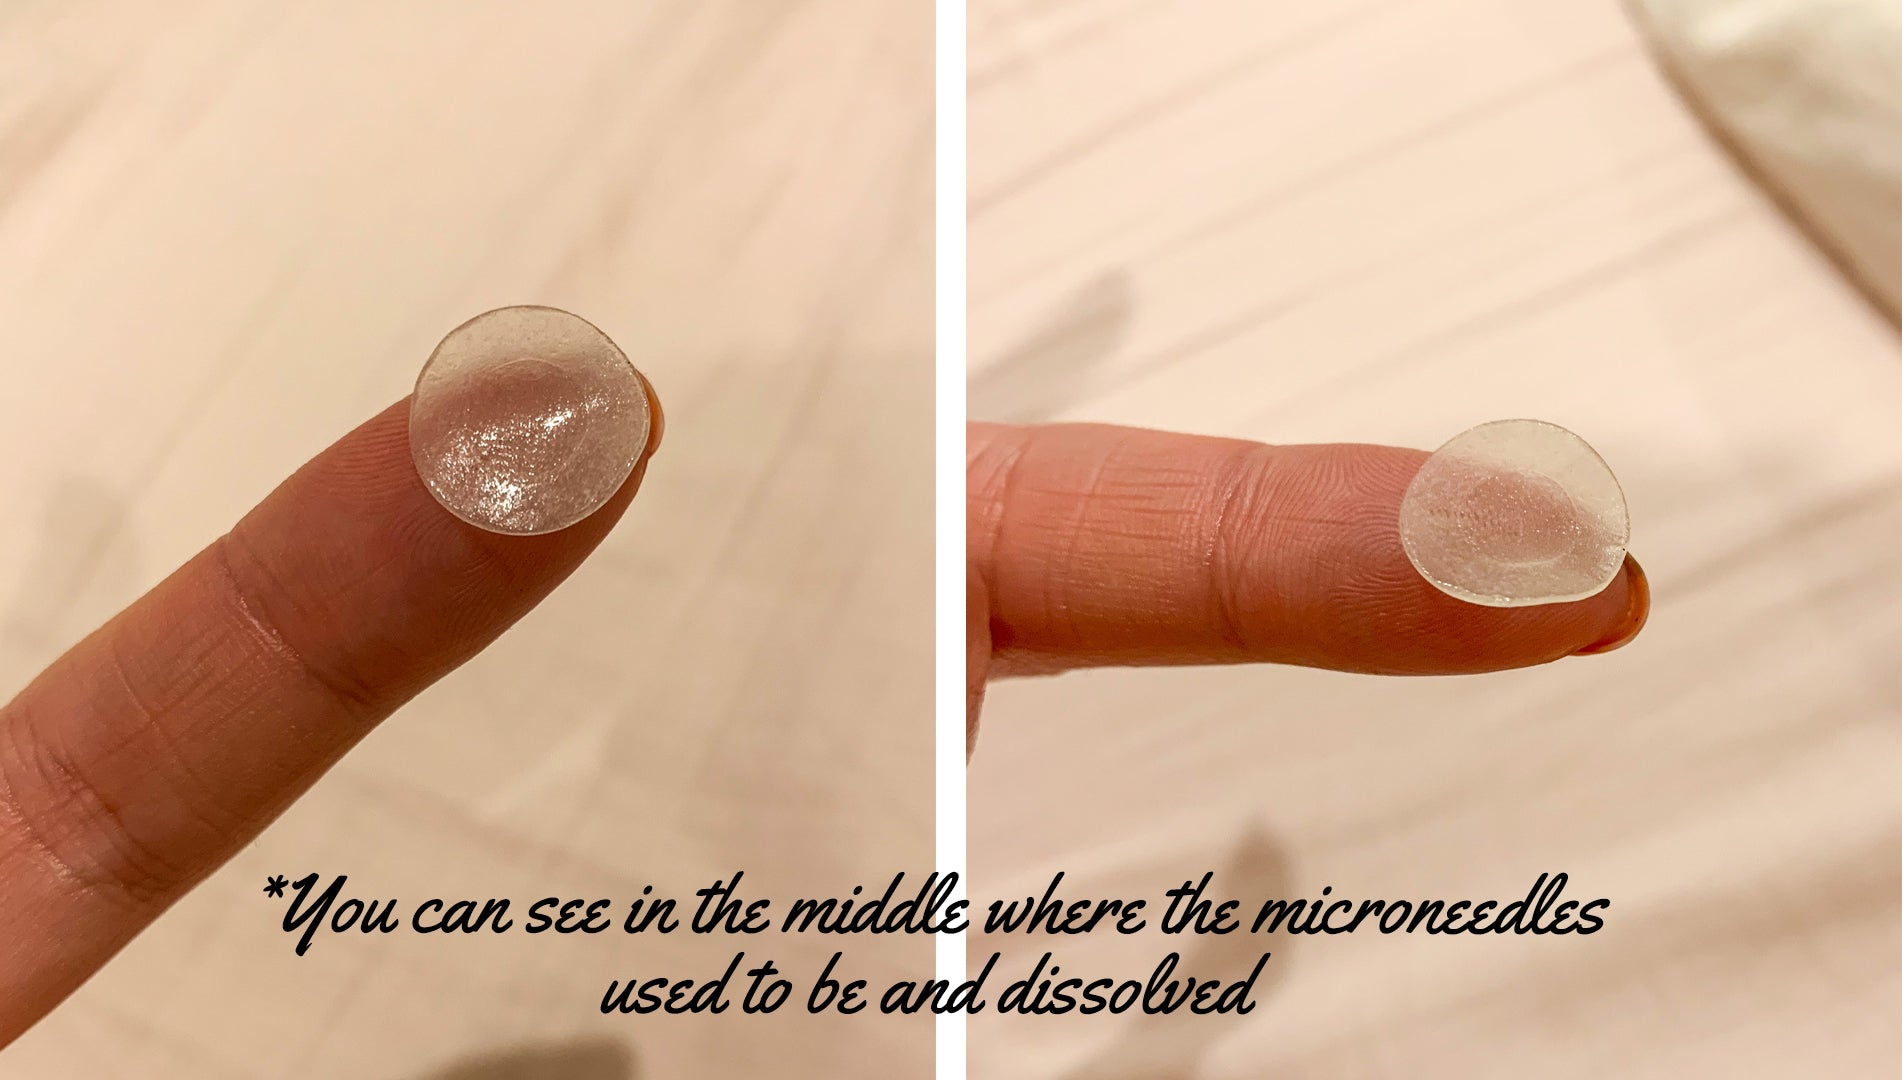 dissolved microneedles in the middle after the usage